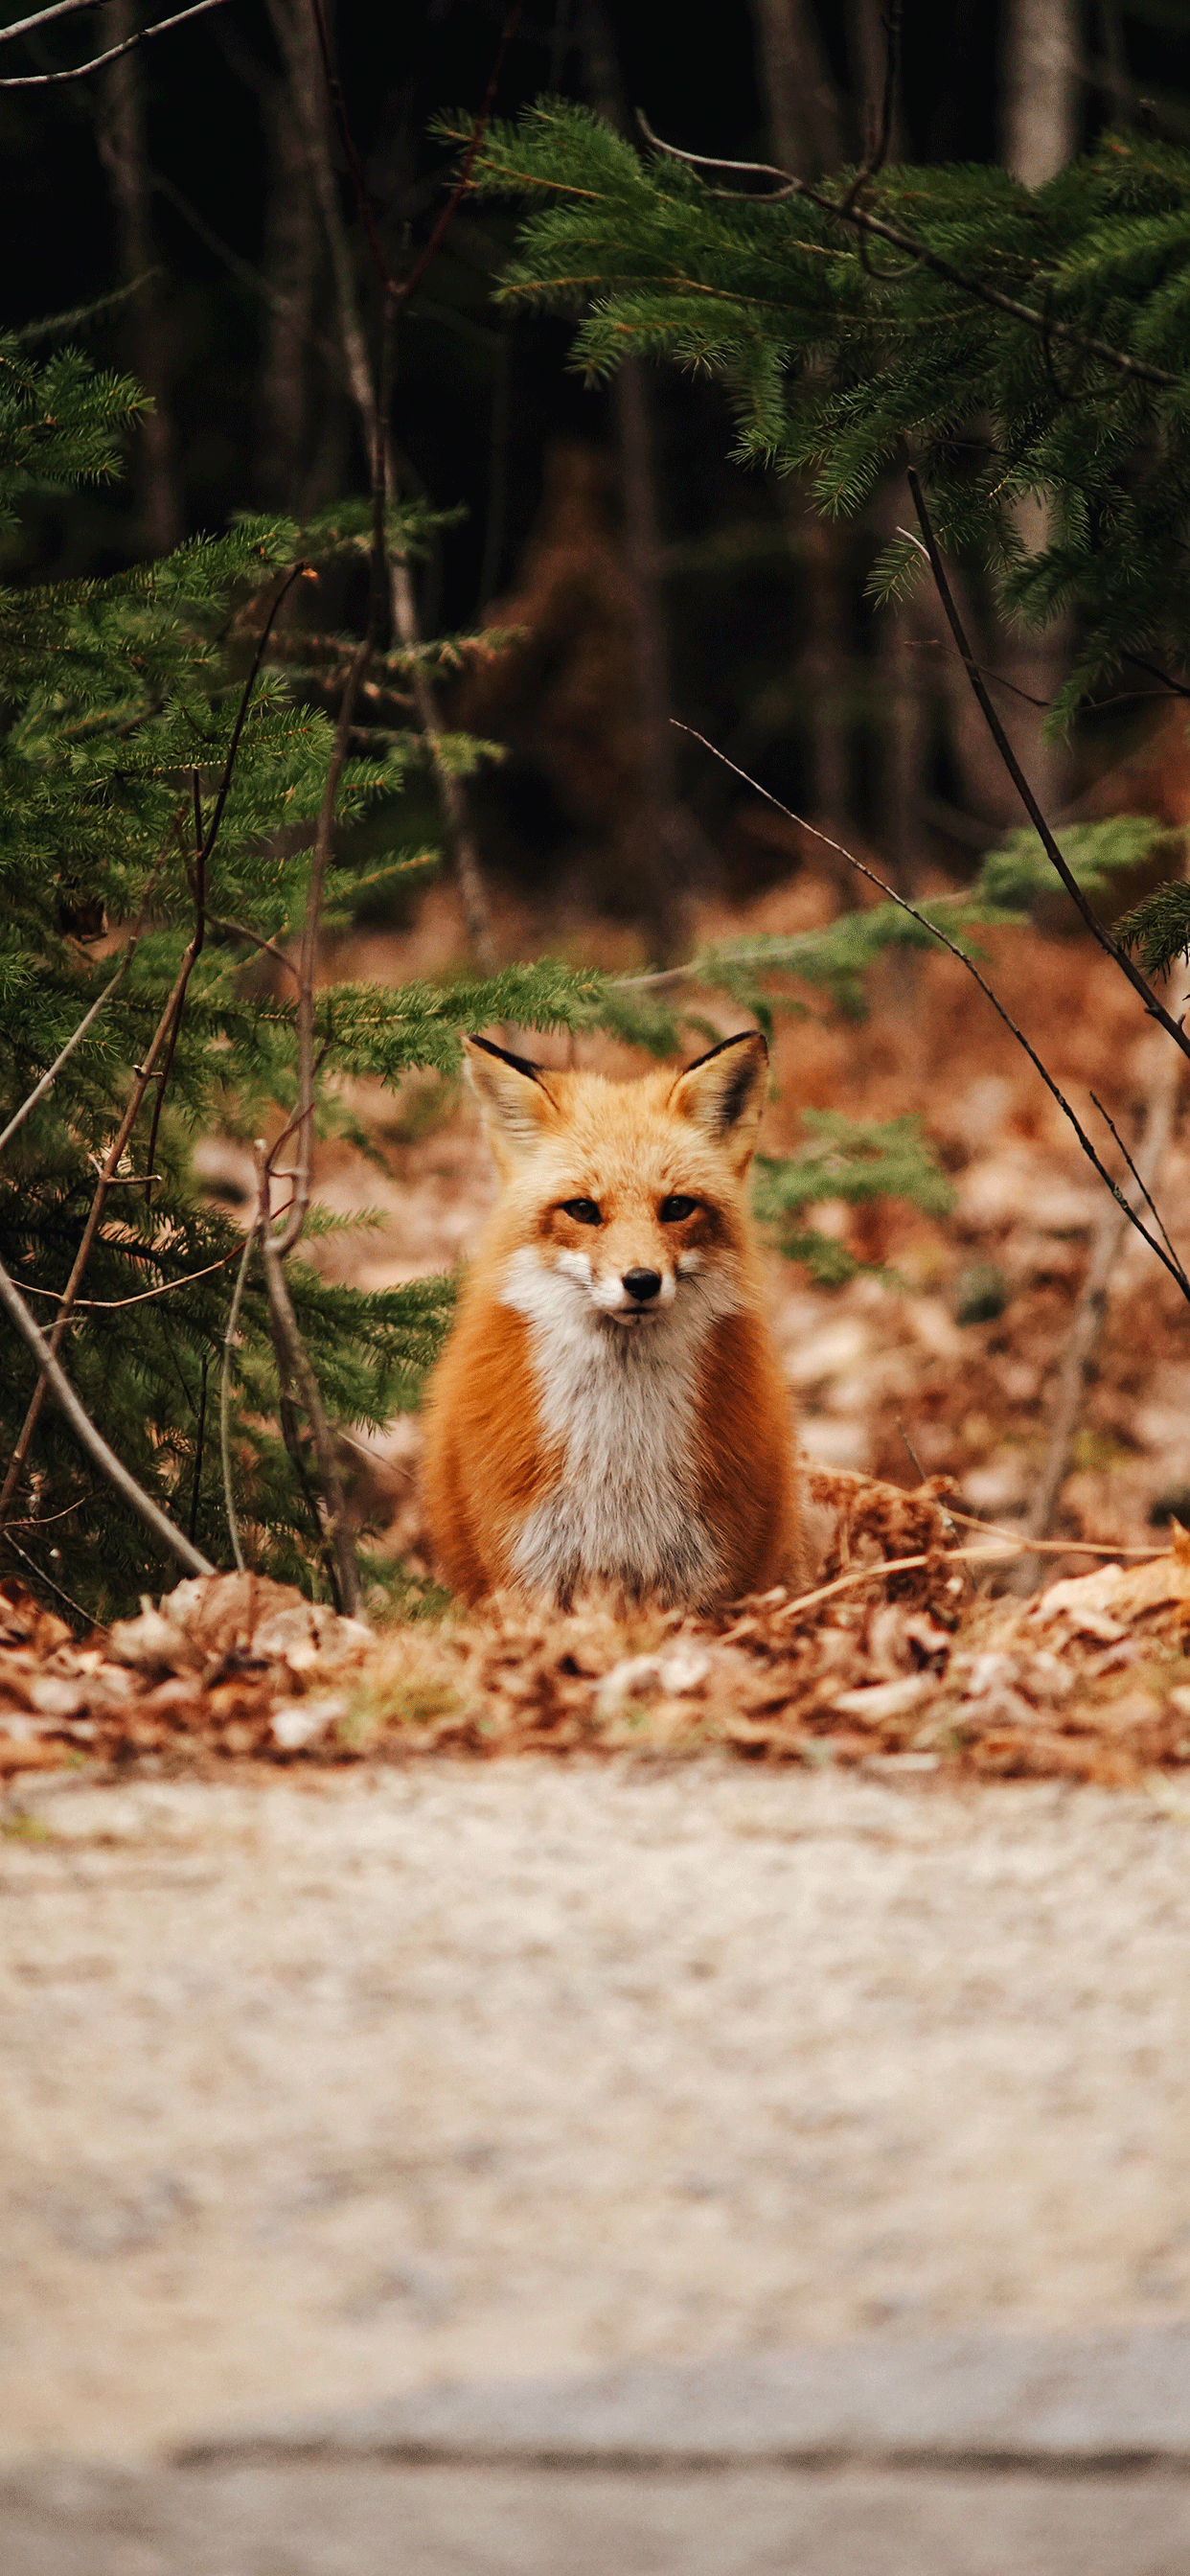 iPhone wallpaper fox Fox